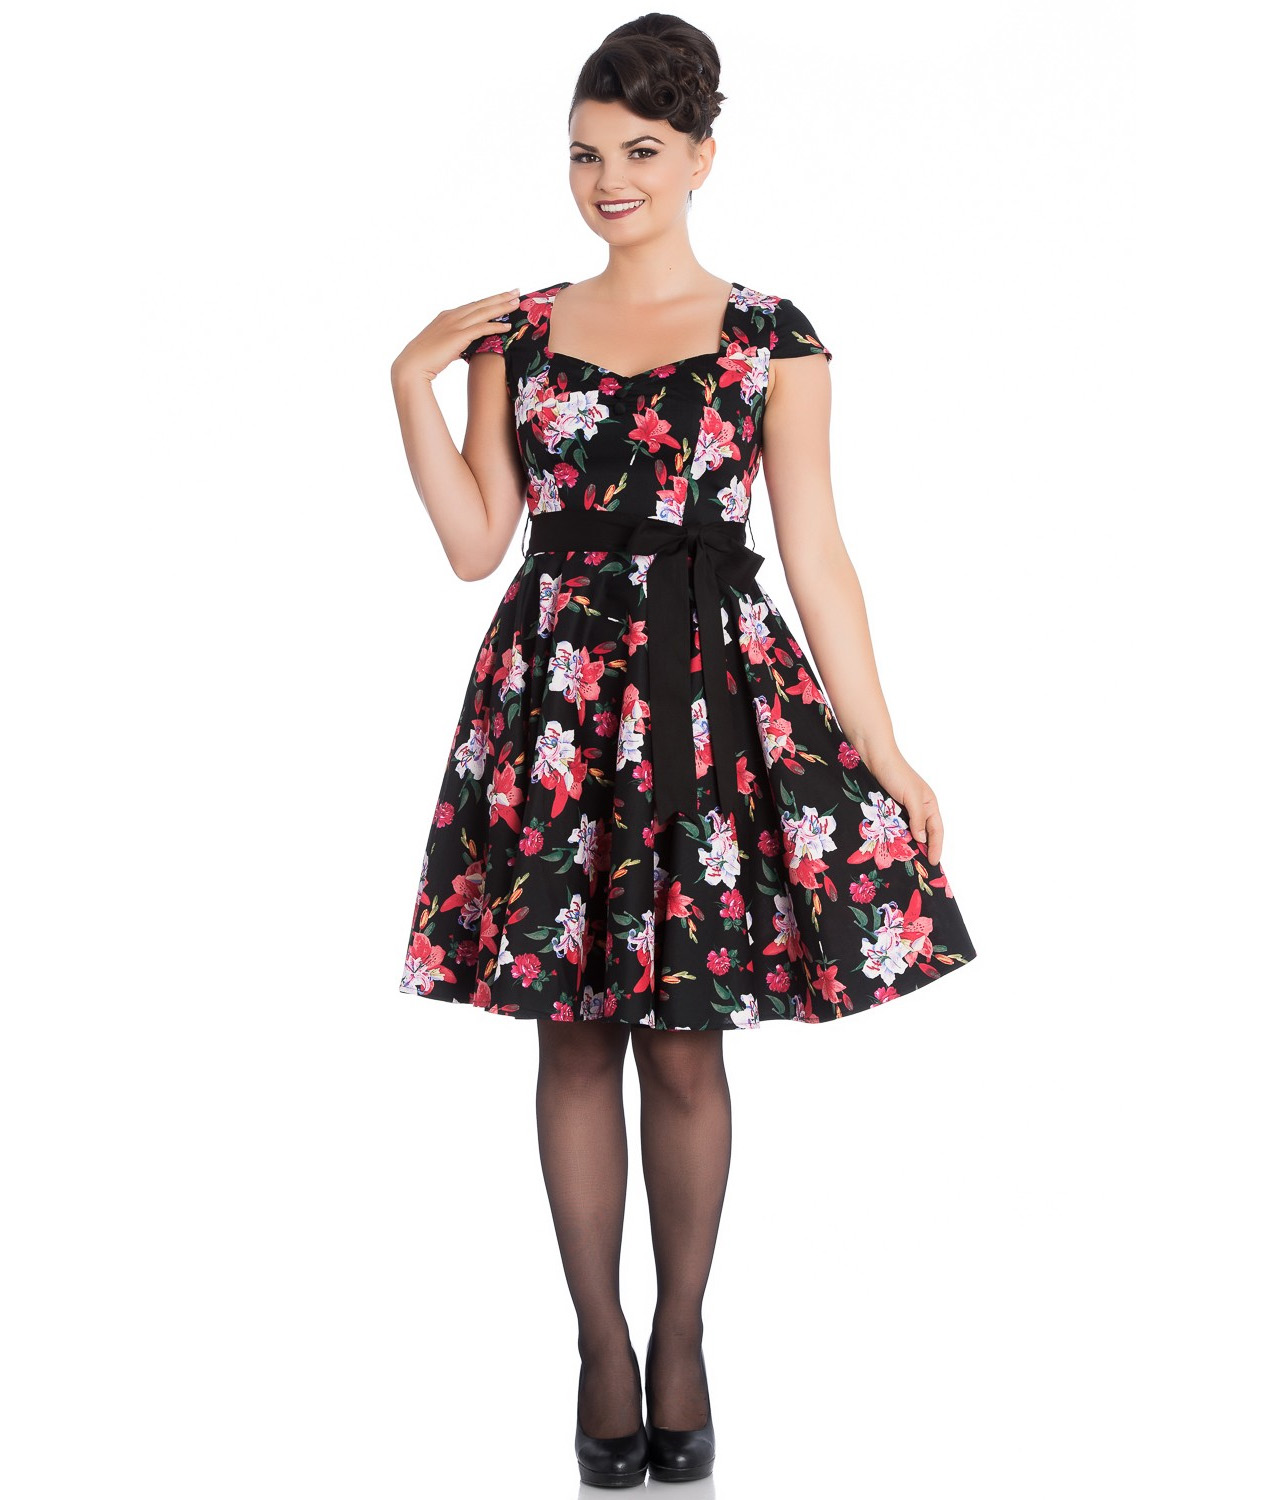 Hell-Bunny-Pin-Up-Mid-Length-50s-Dress-LILIANA-Lilly-Black-Flowers-Bow-All-Sizes thumbnail 7